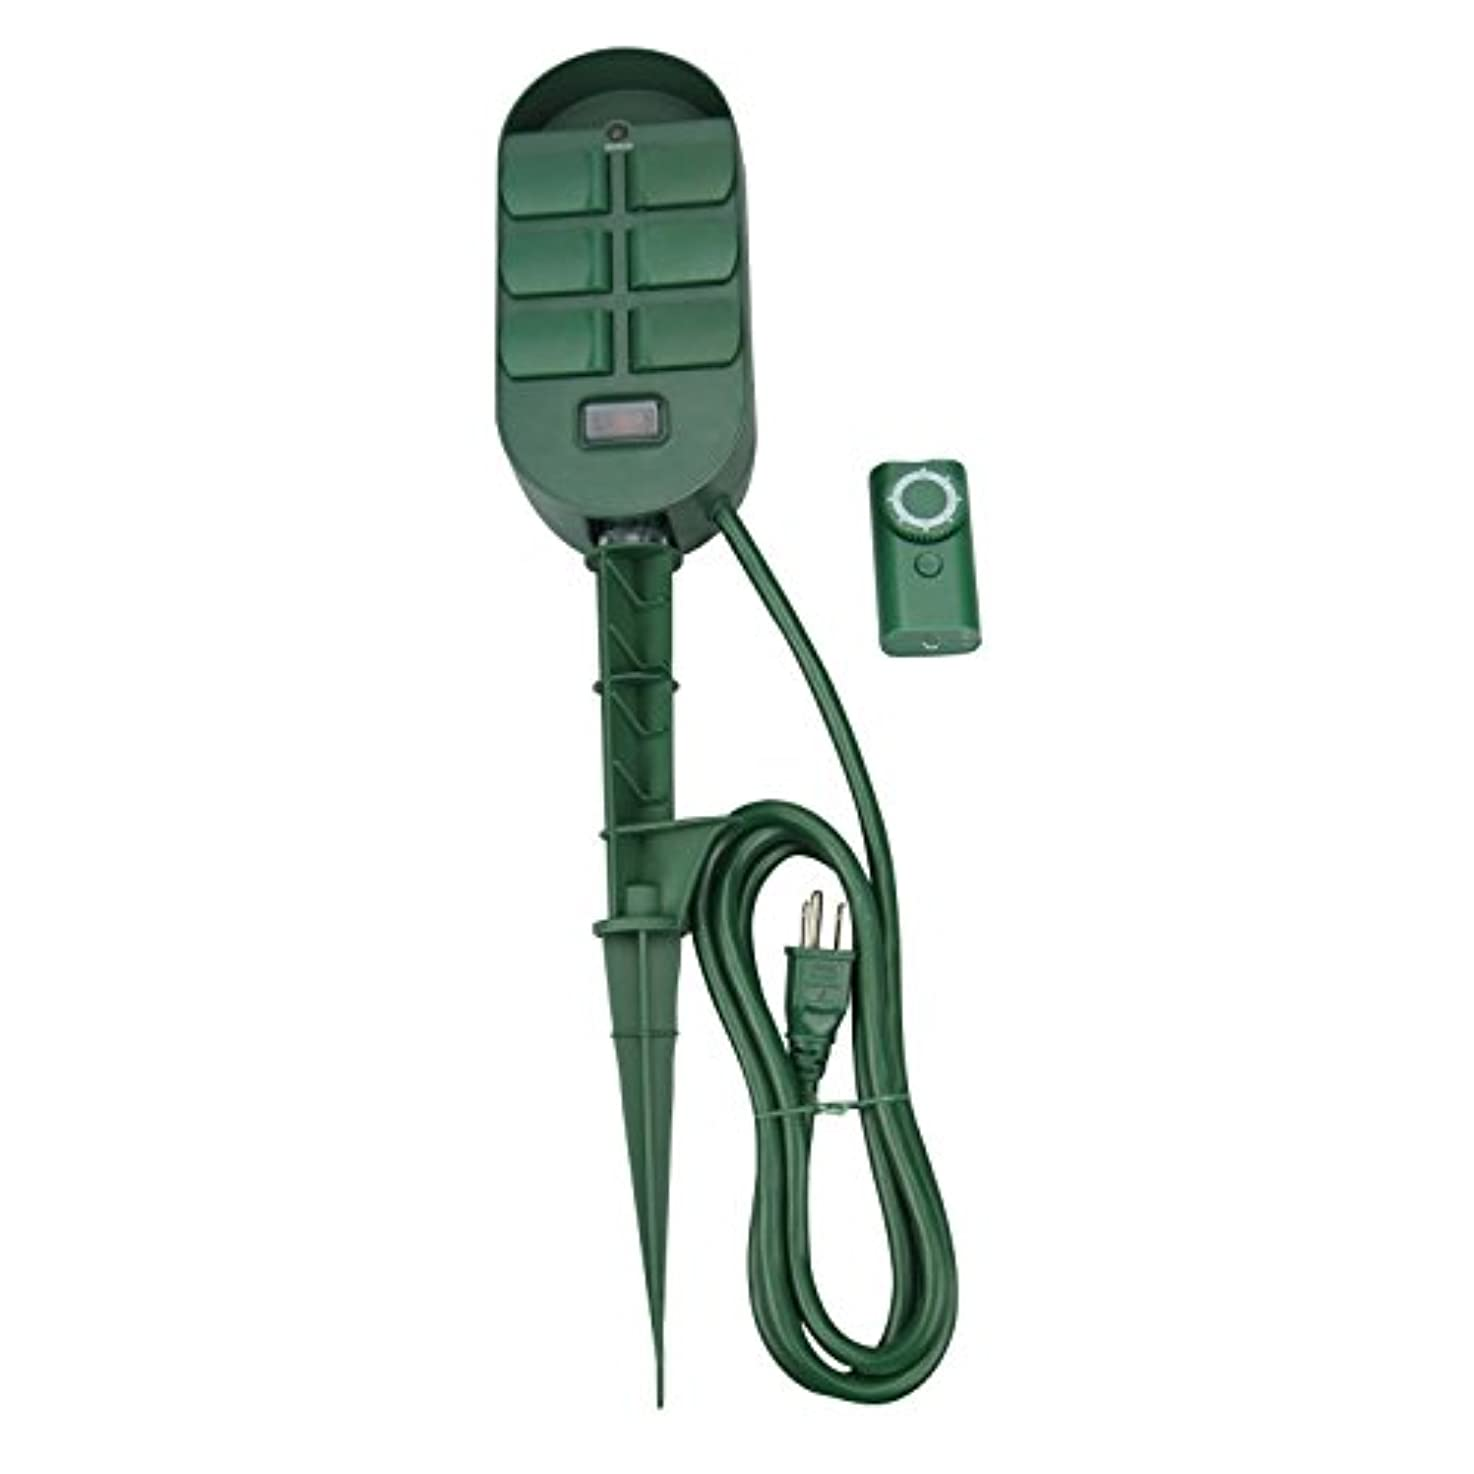 Woods 59785WD 6-Outlet Yard Stake Timer with Photocell and Wireless Remote Control (Green)